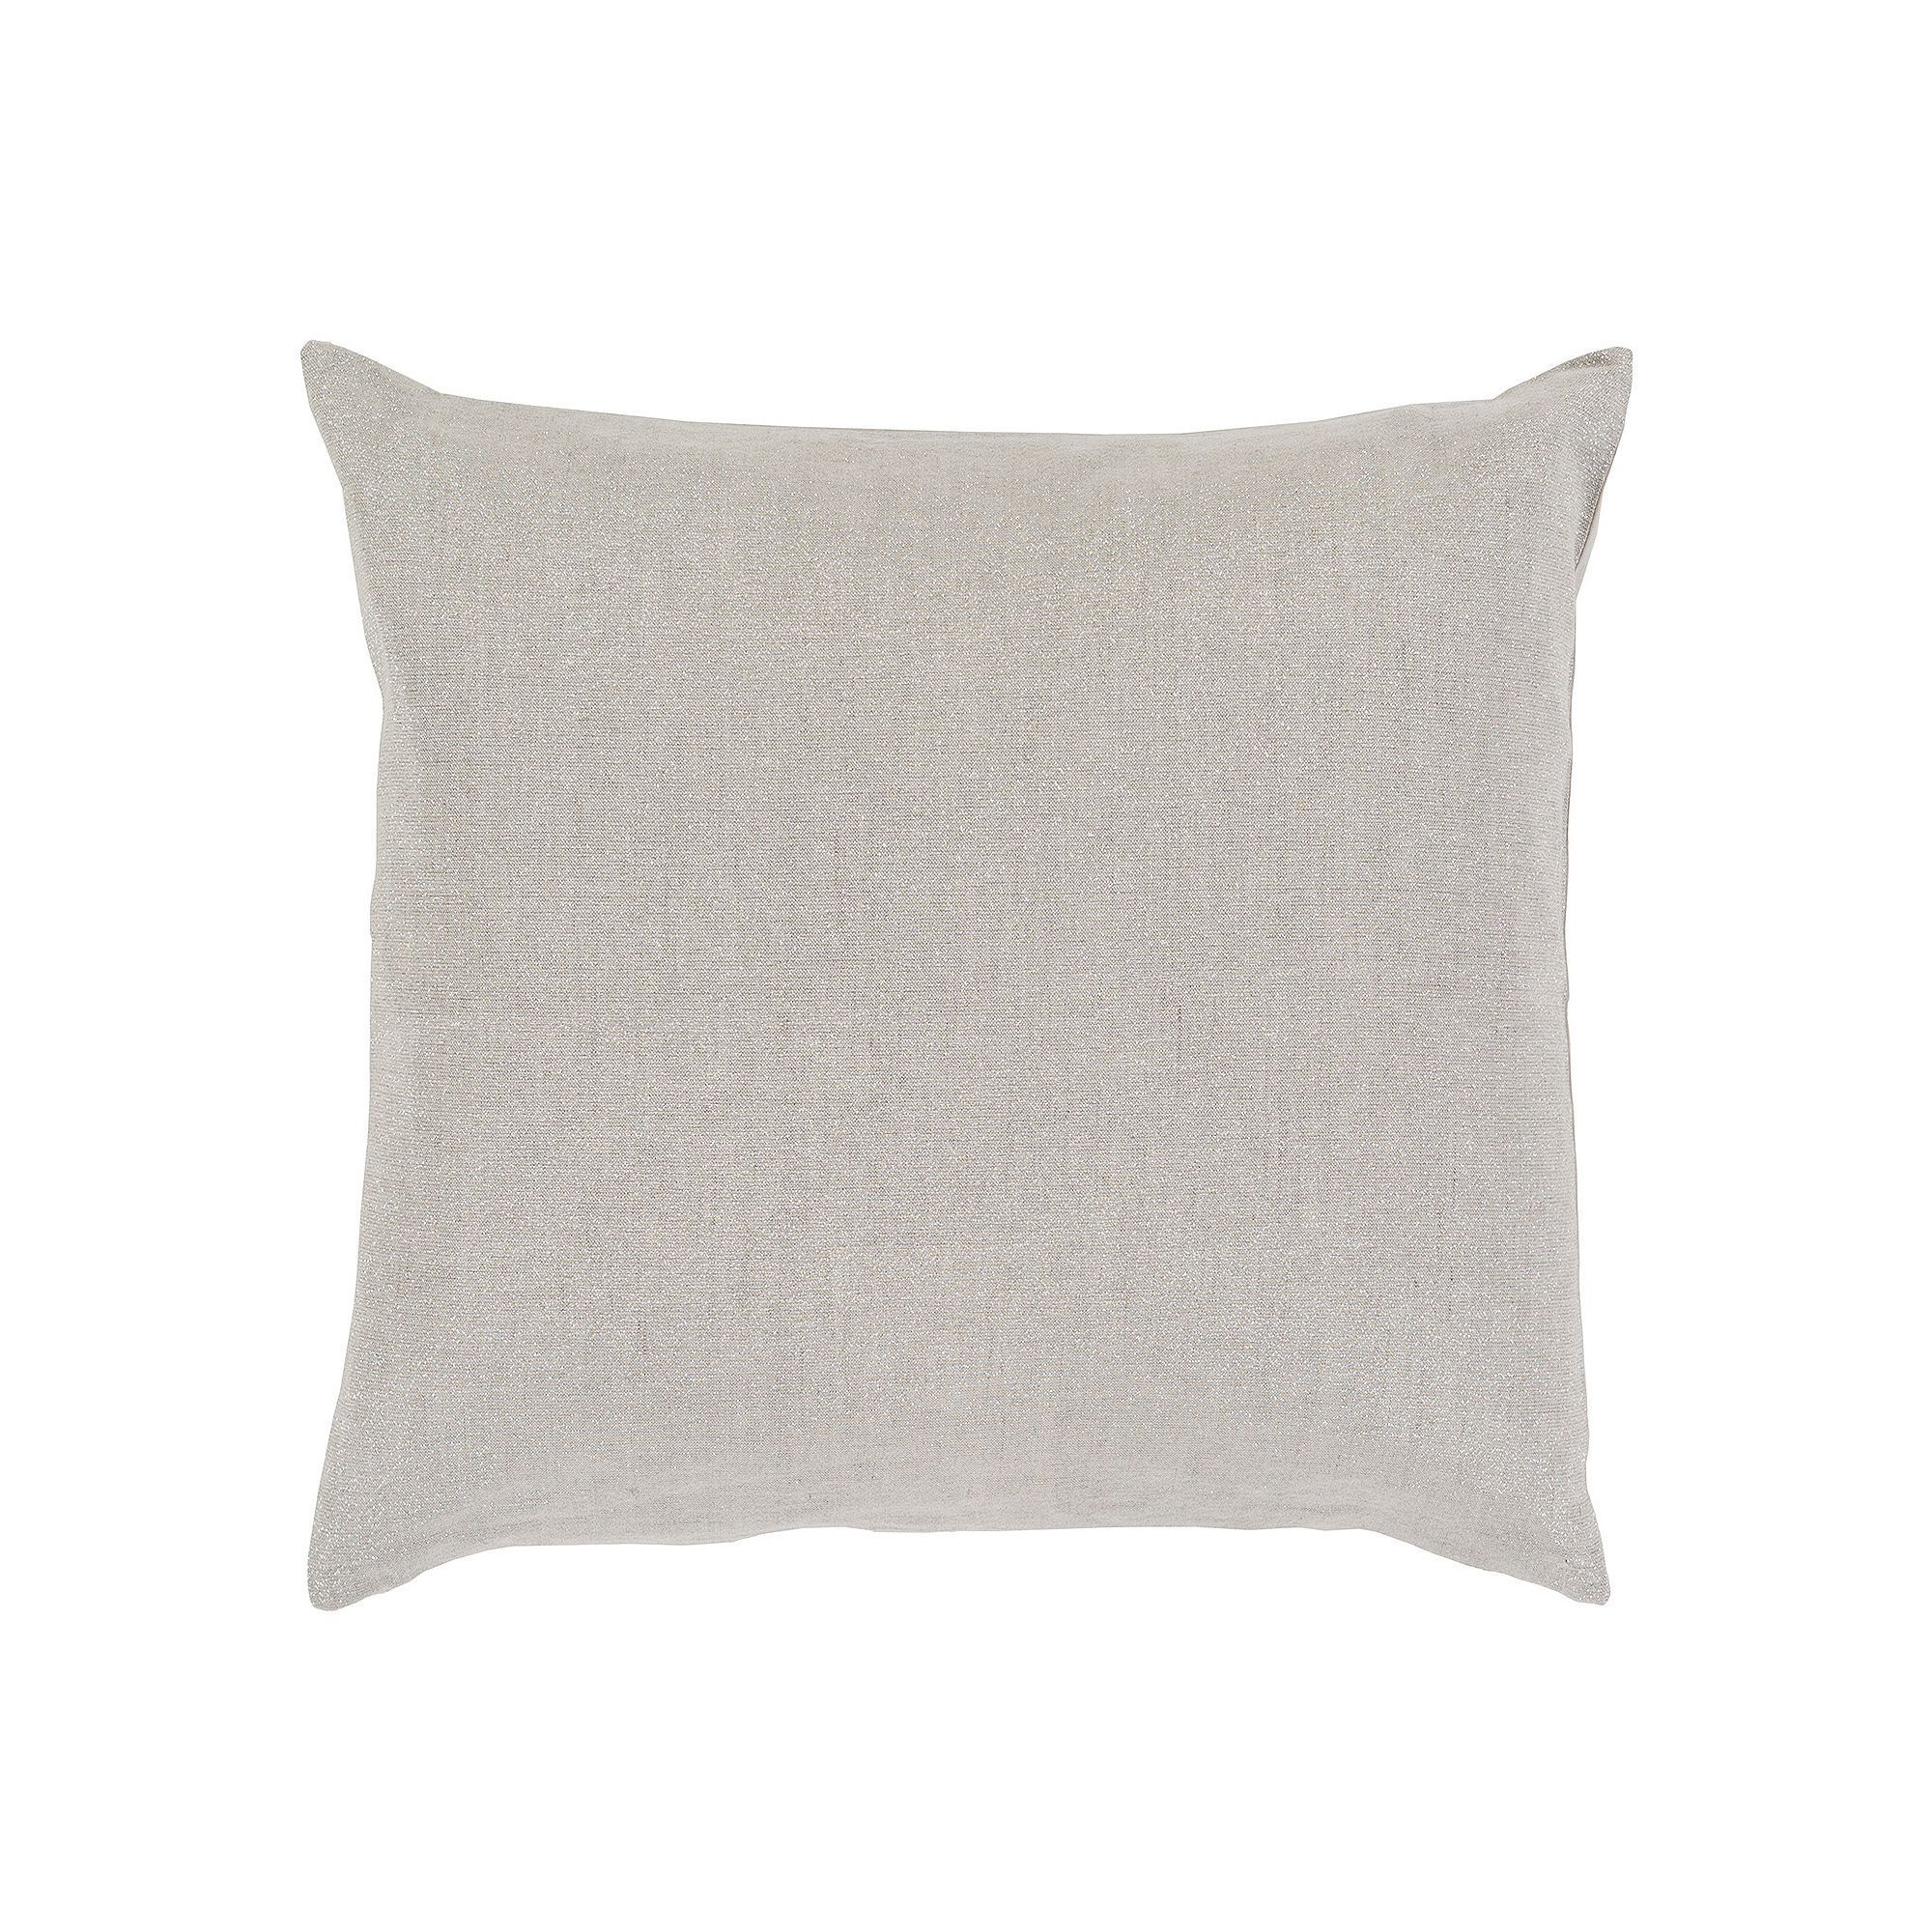 ralph c lauren decorative cable online clearance cotton decor knit pink throw women authentic pillows pillow